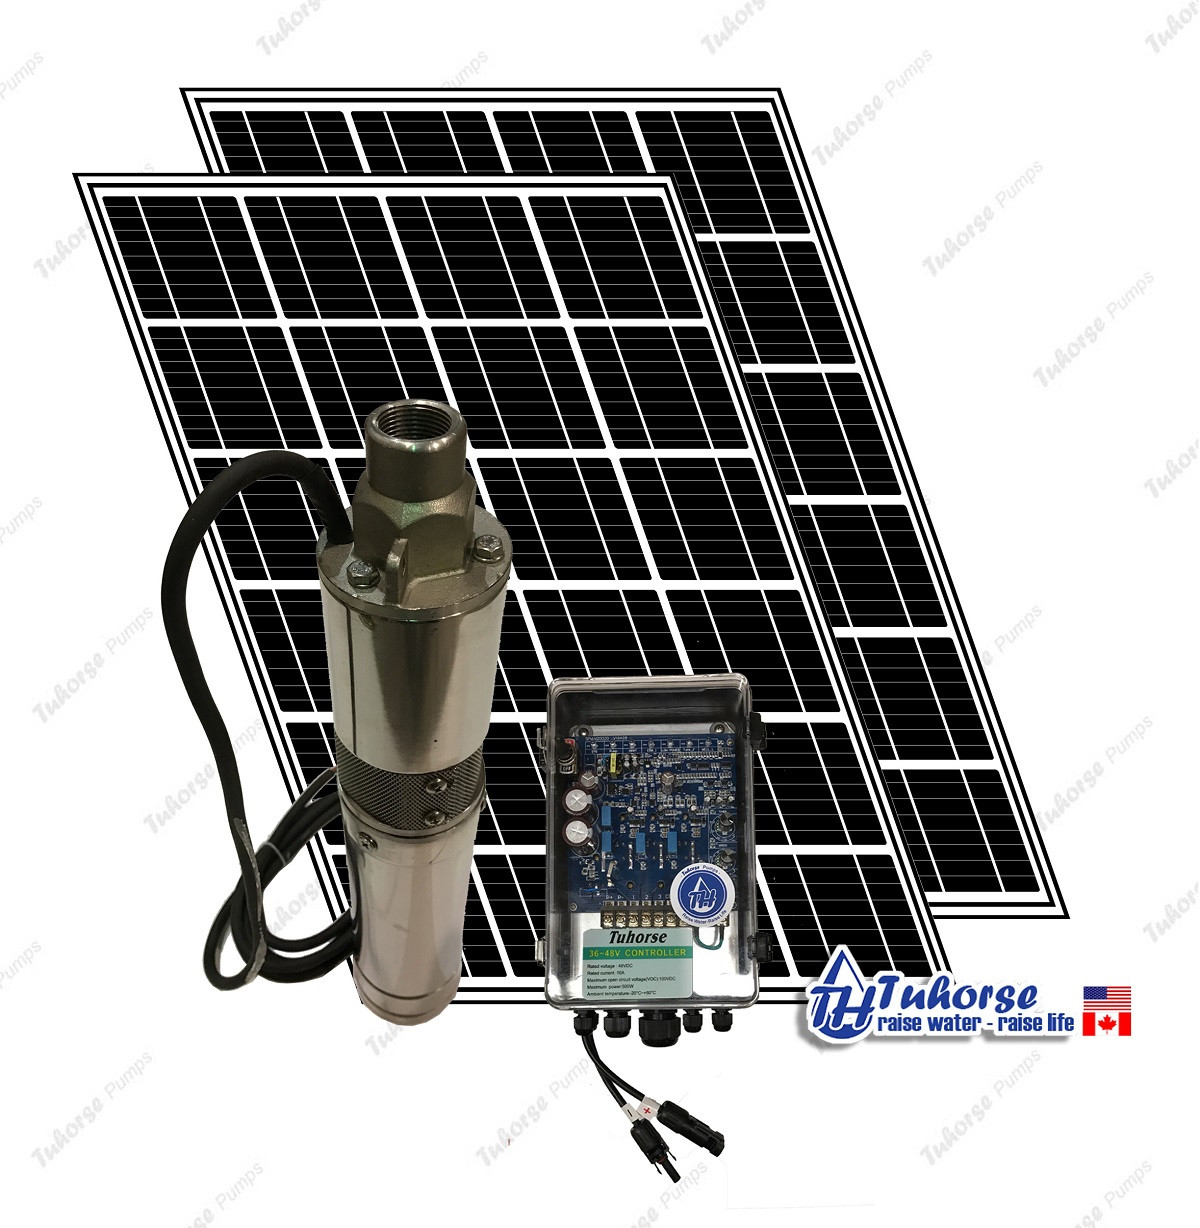 solar water pumps 500w 4gpm deep well pump tuhorse wiring 4 wire 220 to 3 prong plug as well solar panel prices [ 1200 x 1228 Pixel ]